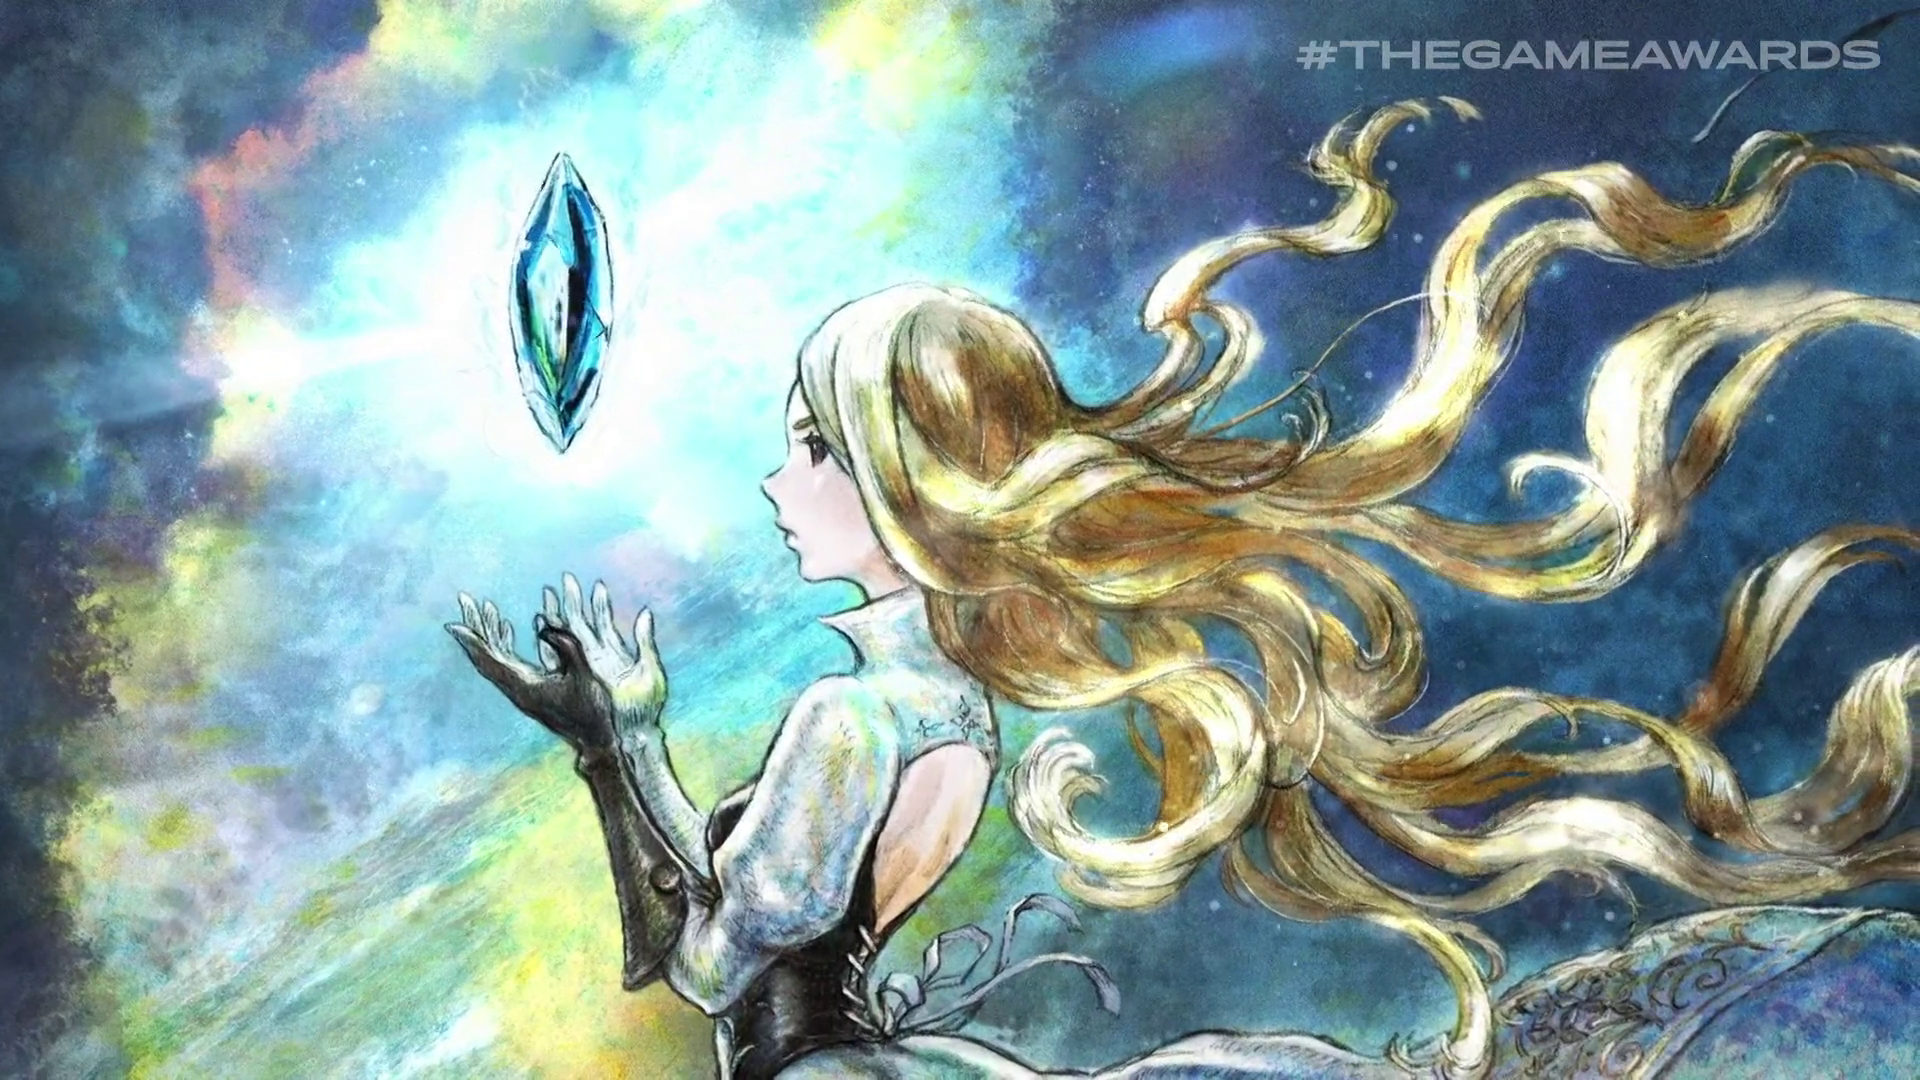 a woman with tendrils of long blond hair with a blue crystal floating above her hands in Bravely Default 2